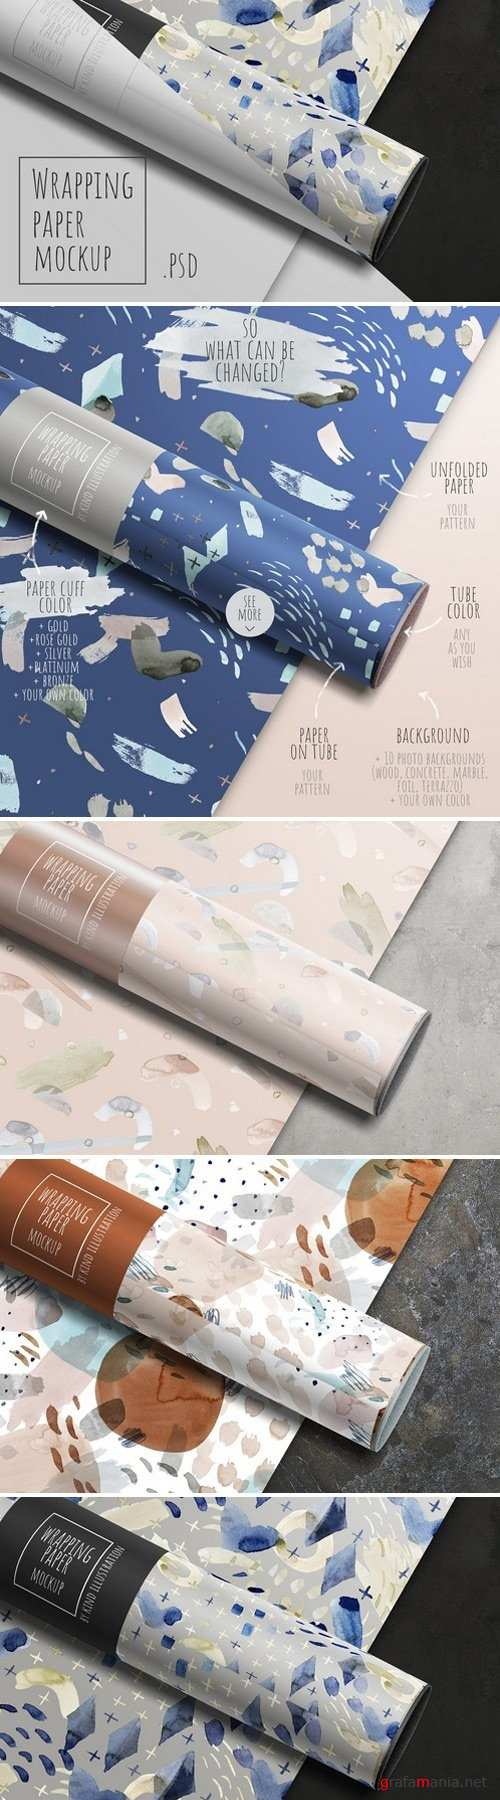 Wrapping paper mockup 2340406